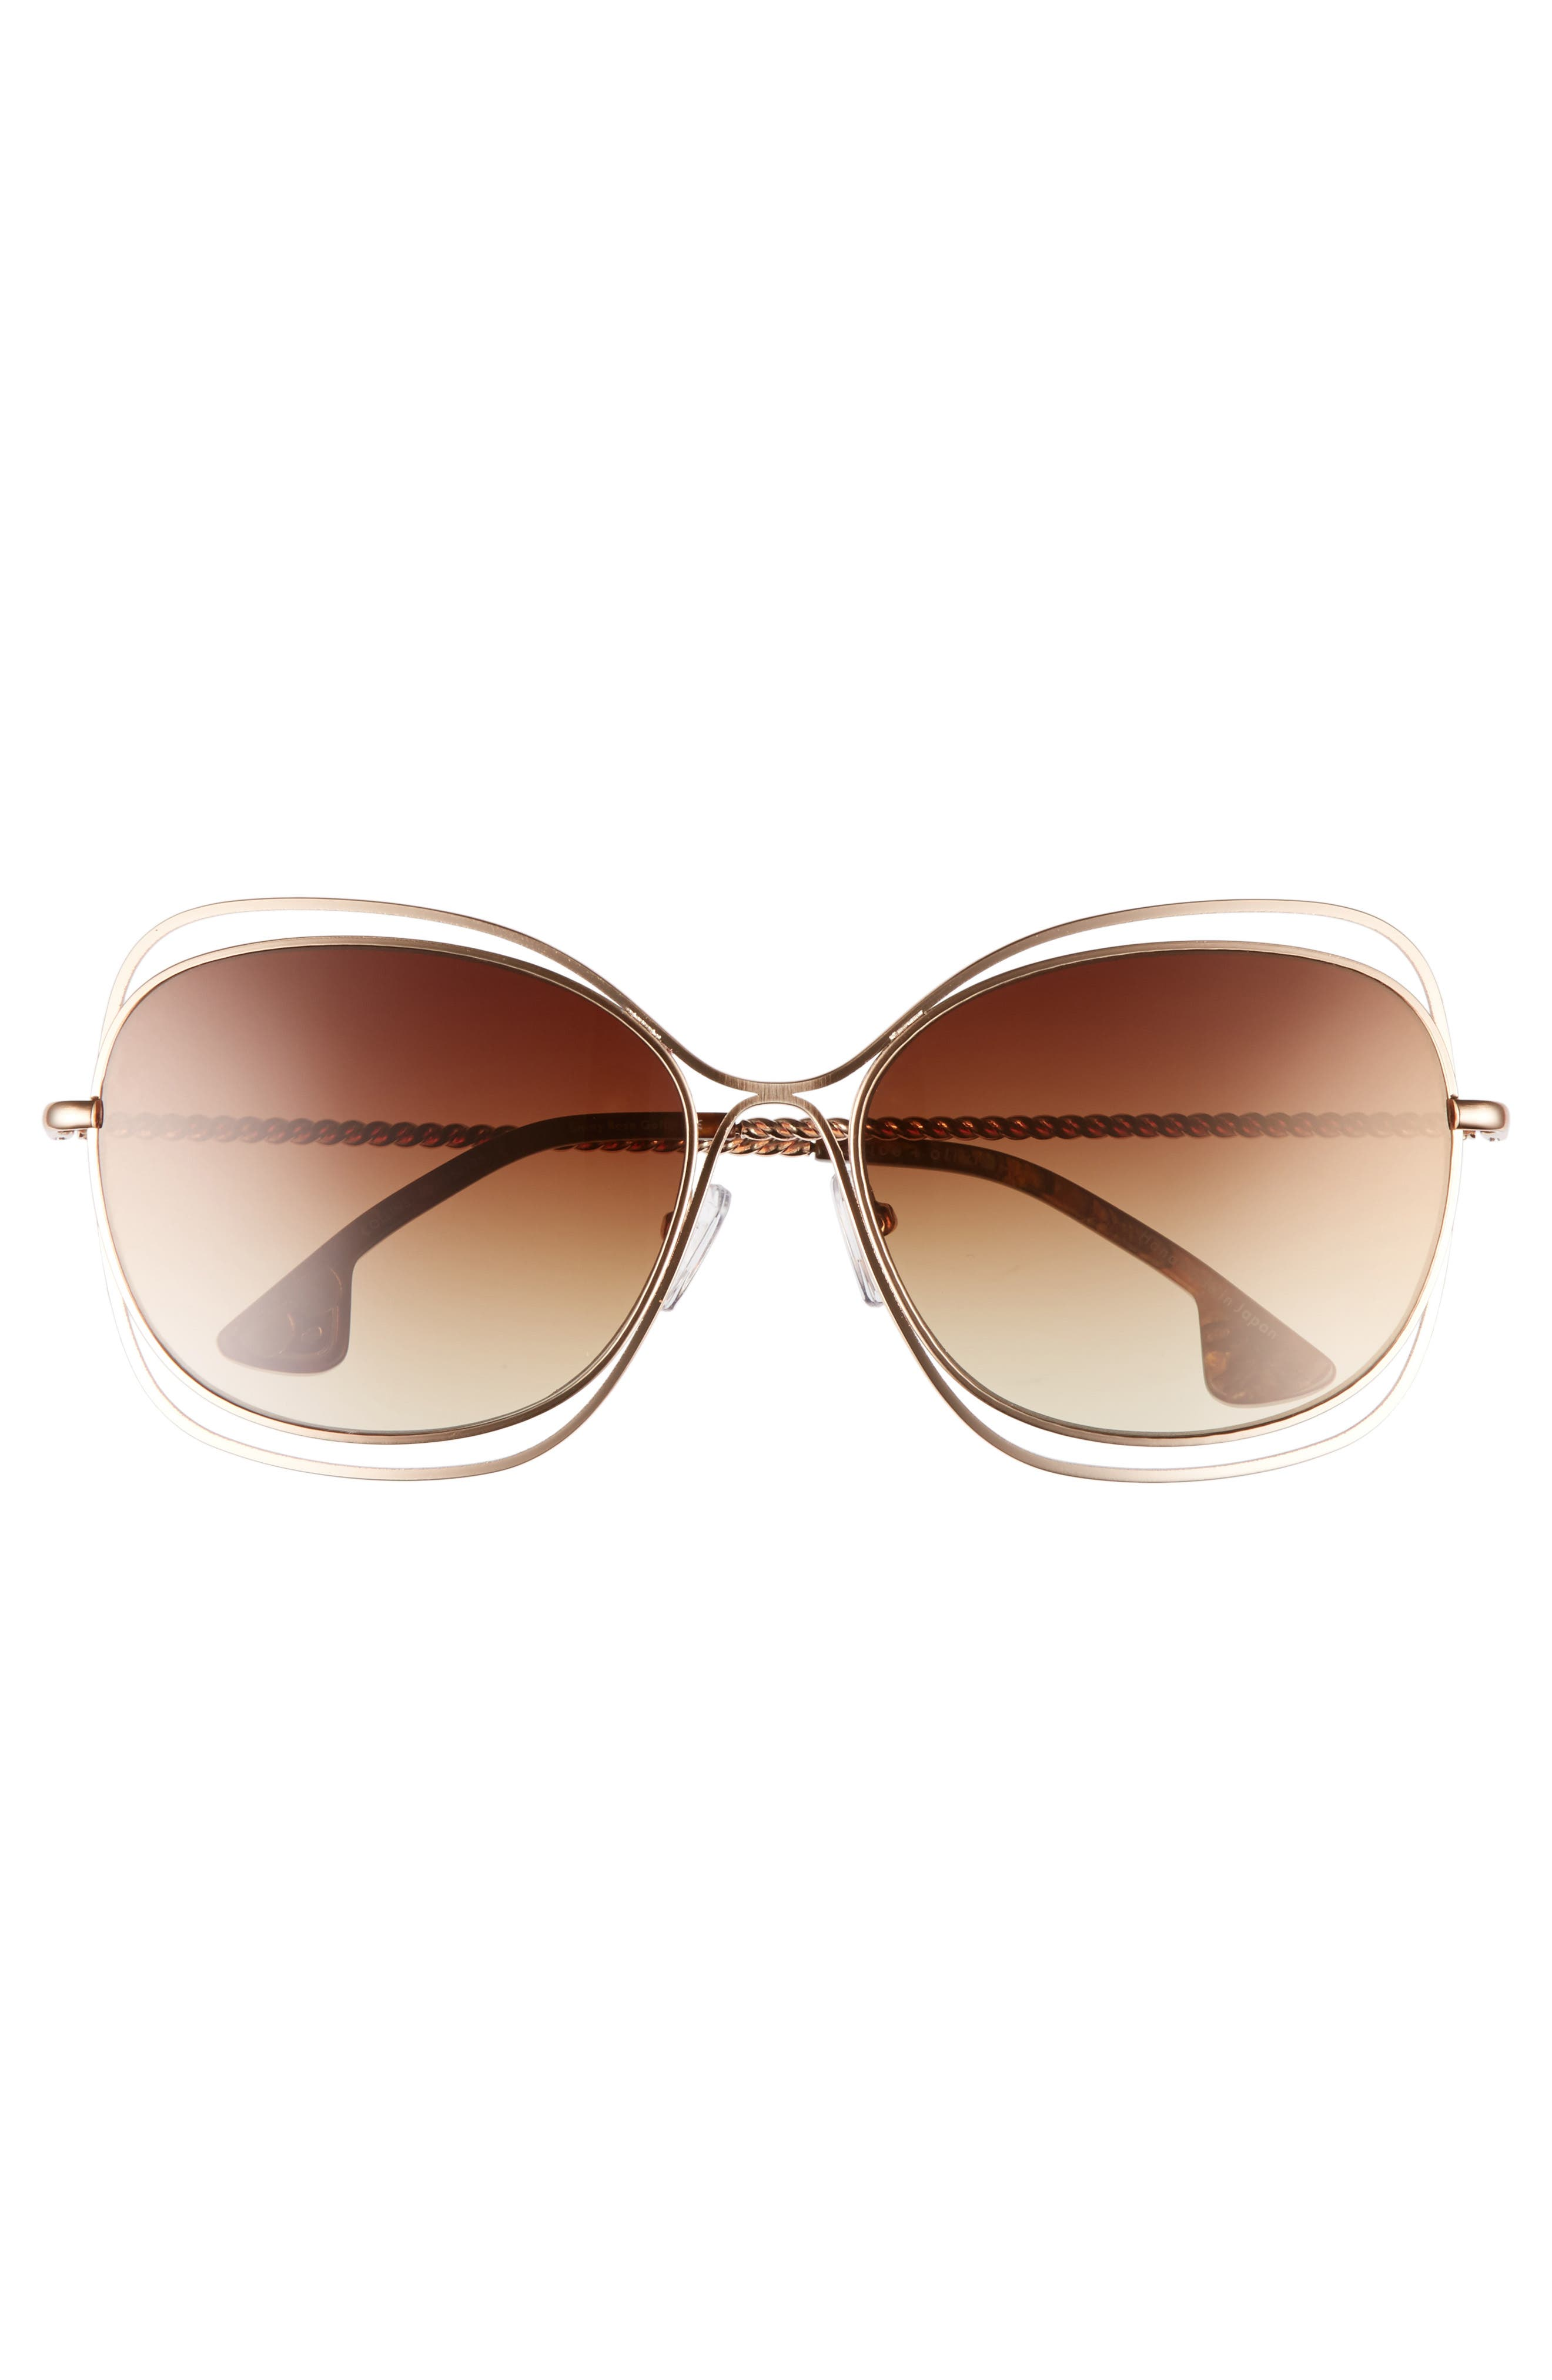 Collins 60mm Butterfly Sunglasses,                             Alternate thumbnail 3, color,                             220